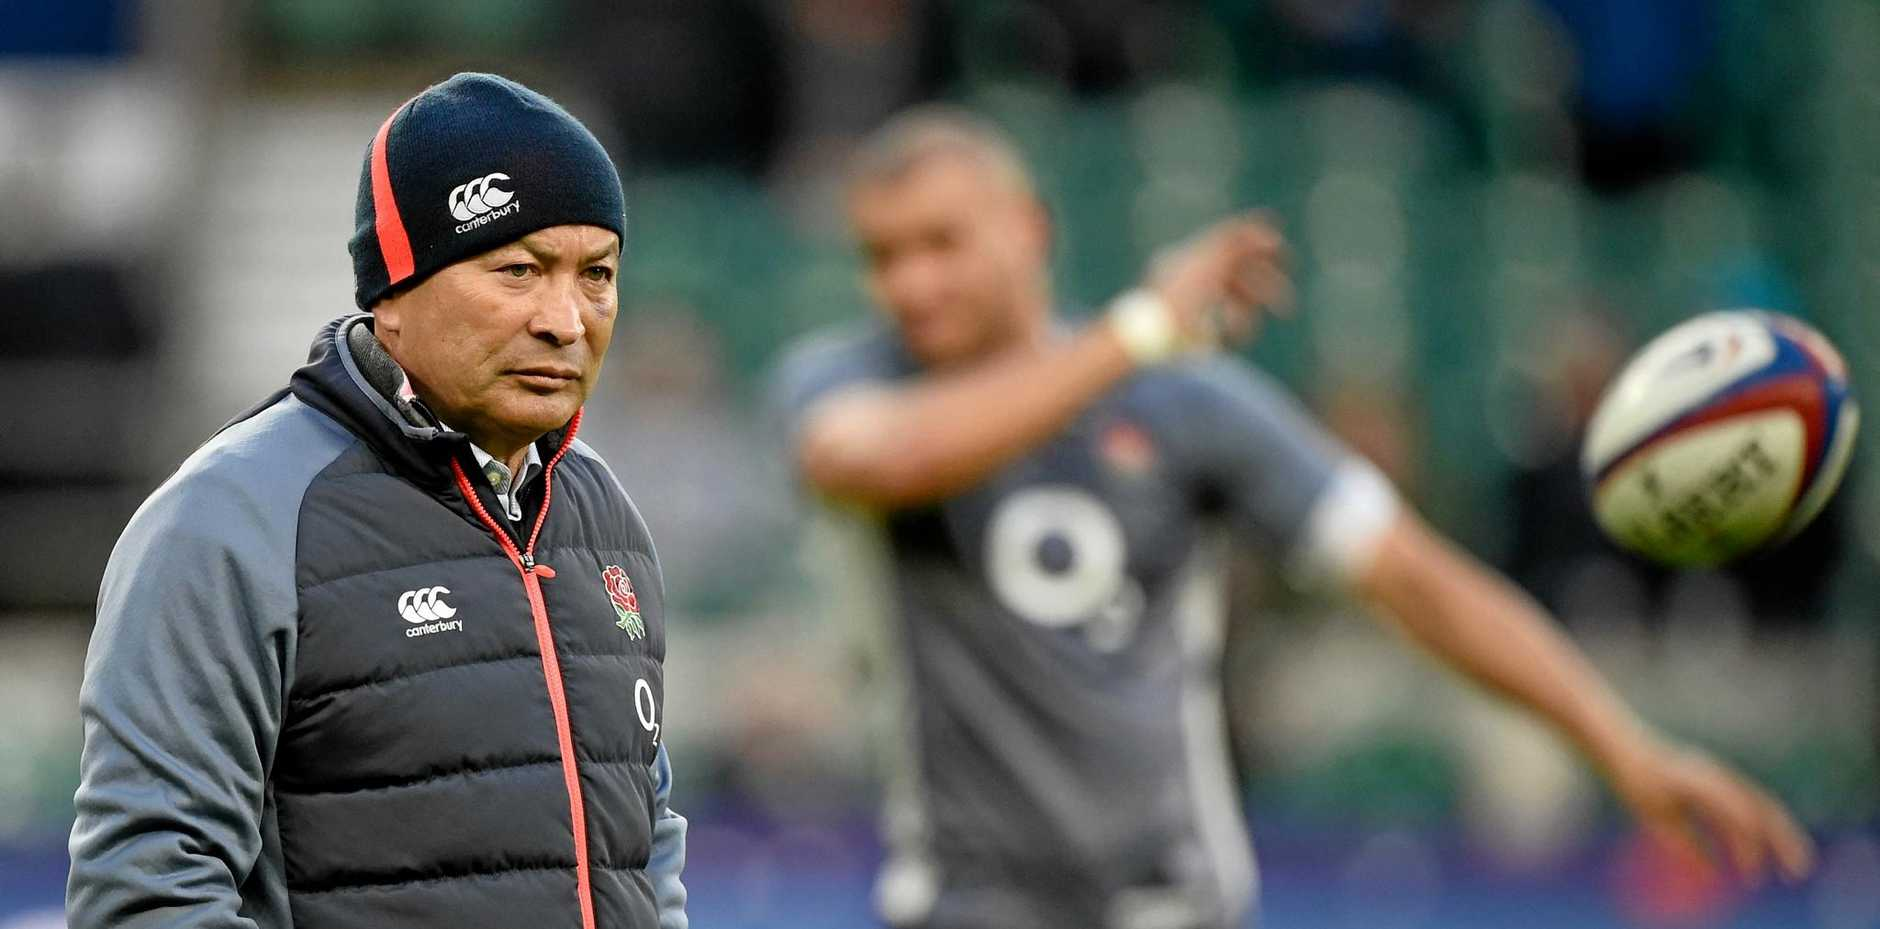 England coach Eddie Jones has moved to end any complacency among his players before their clash with Ireland in Dublin.